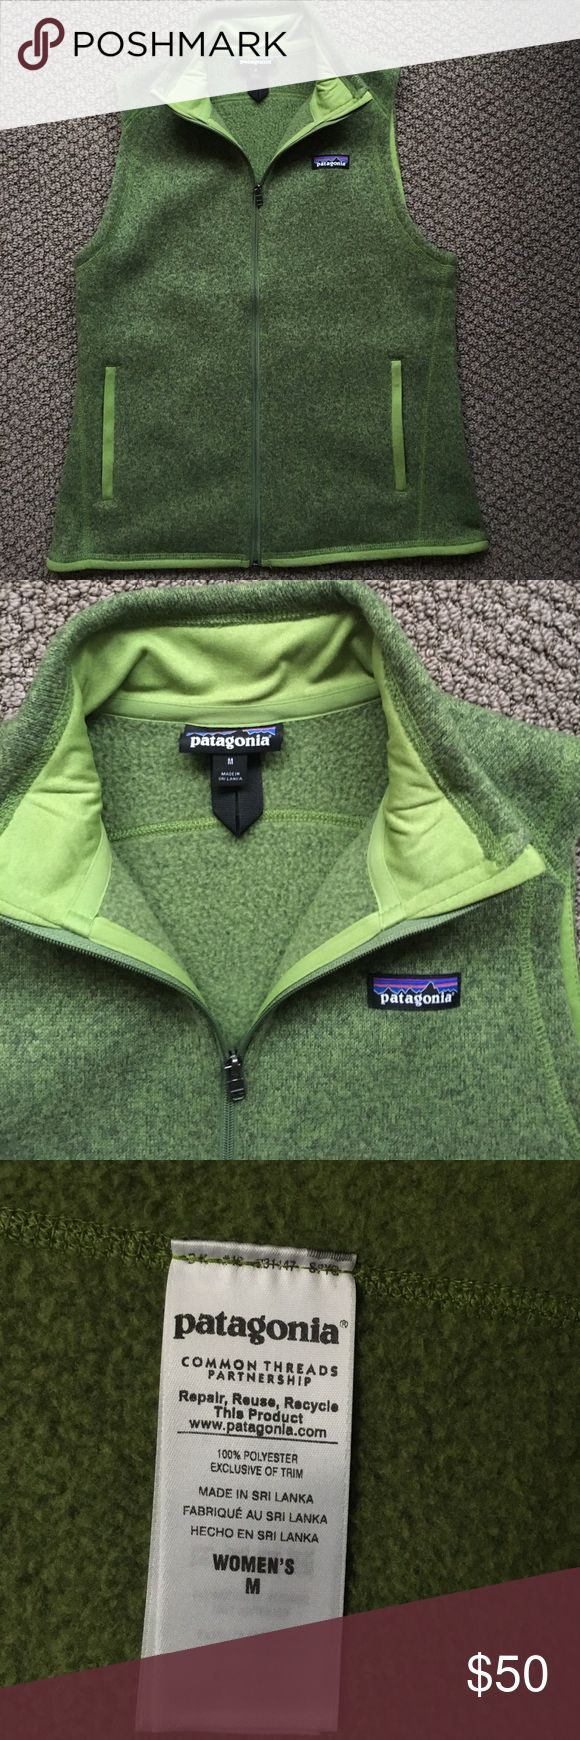 Patagonia Better Sweater Vest Patagonia's Better Sweater vest in lime green. Worn only a few times and still in great condition. Very comfy but light weight, perfect for the fall or spring!! Patagonia Jackets & Coats Vests